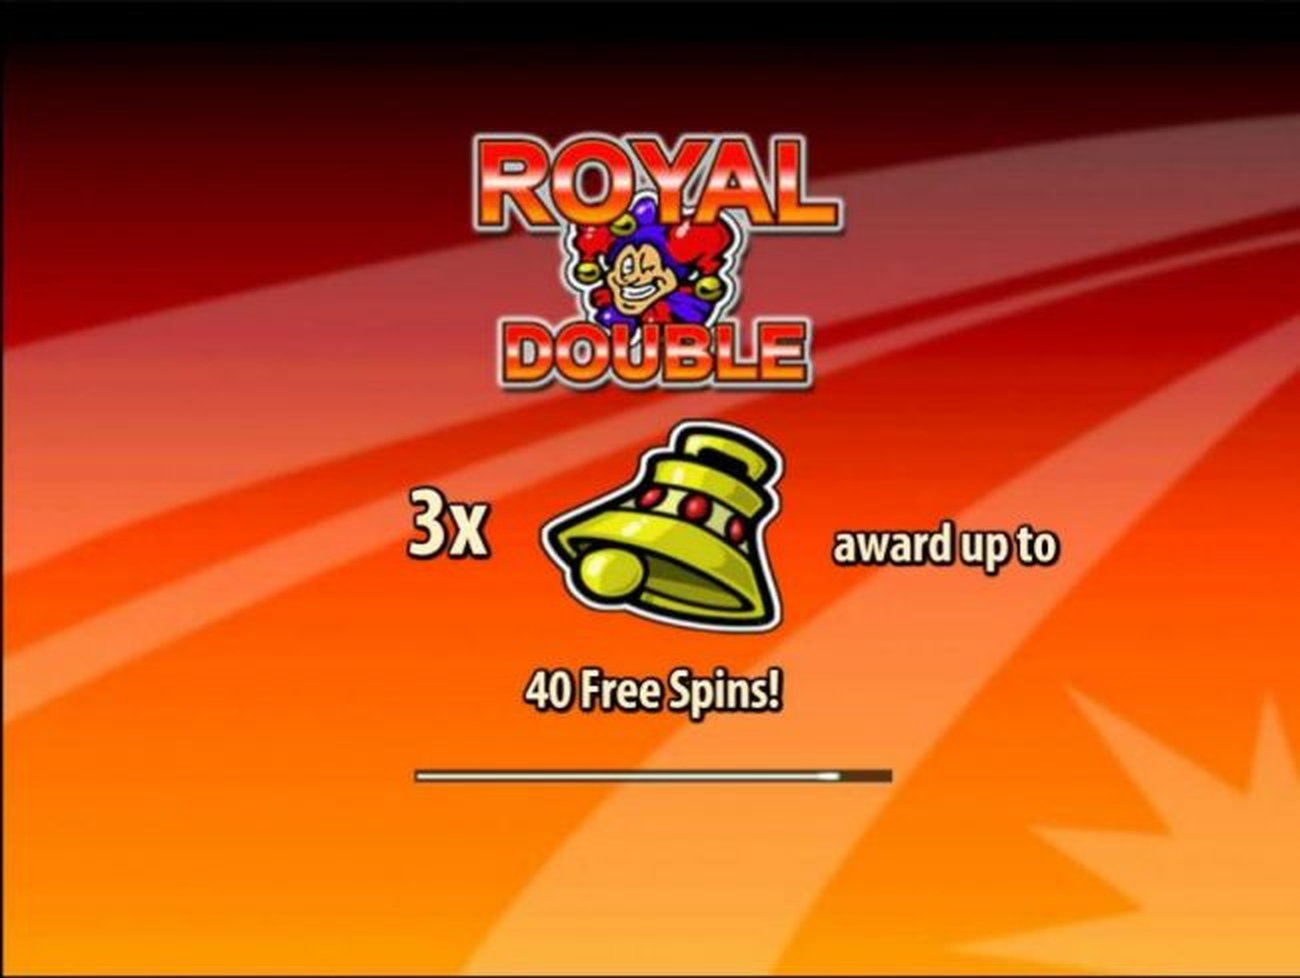 The Royal Double Online Slot Demo Game by Tom Horn Gaming